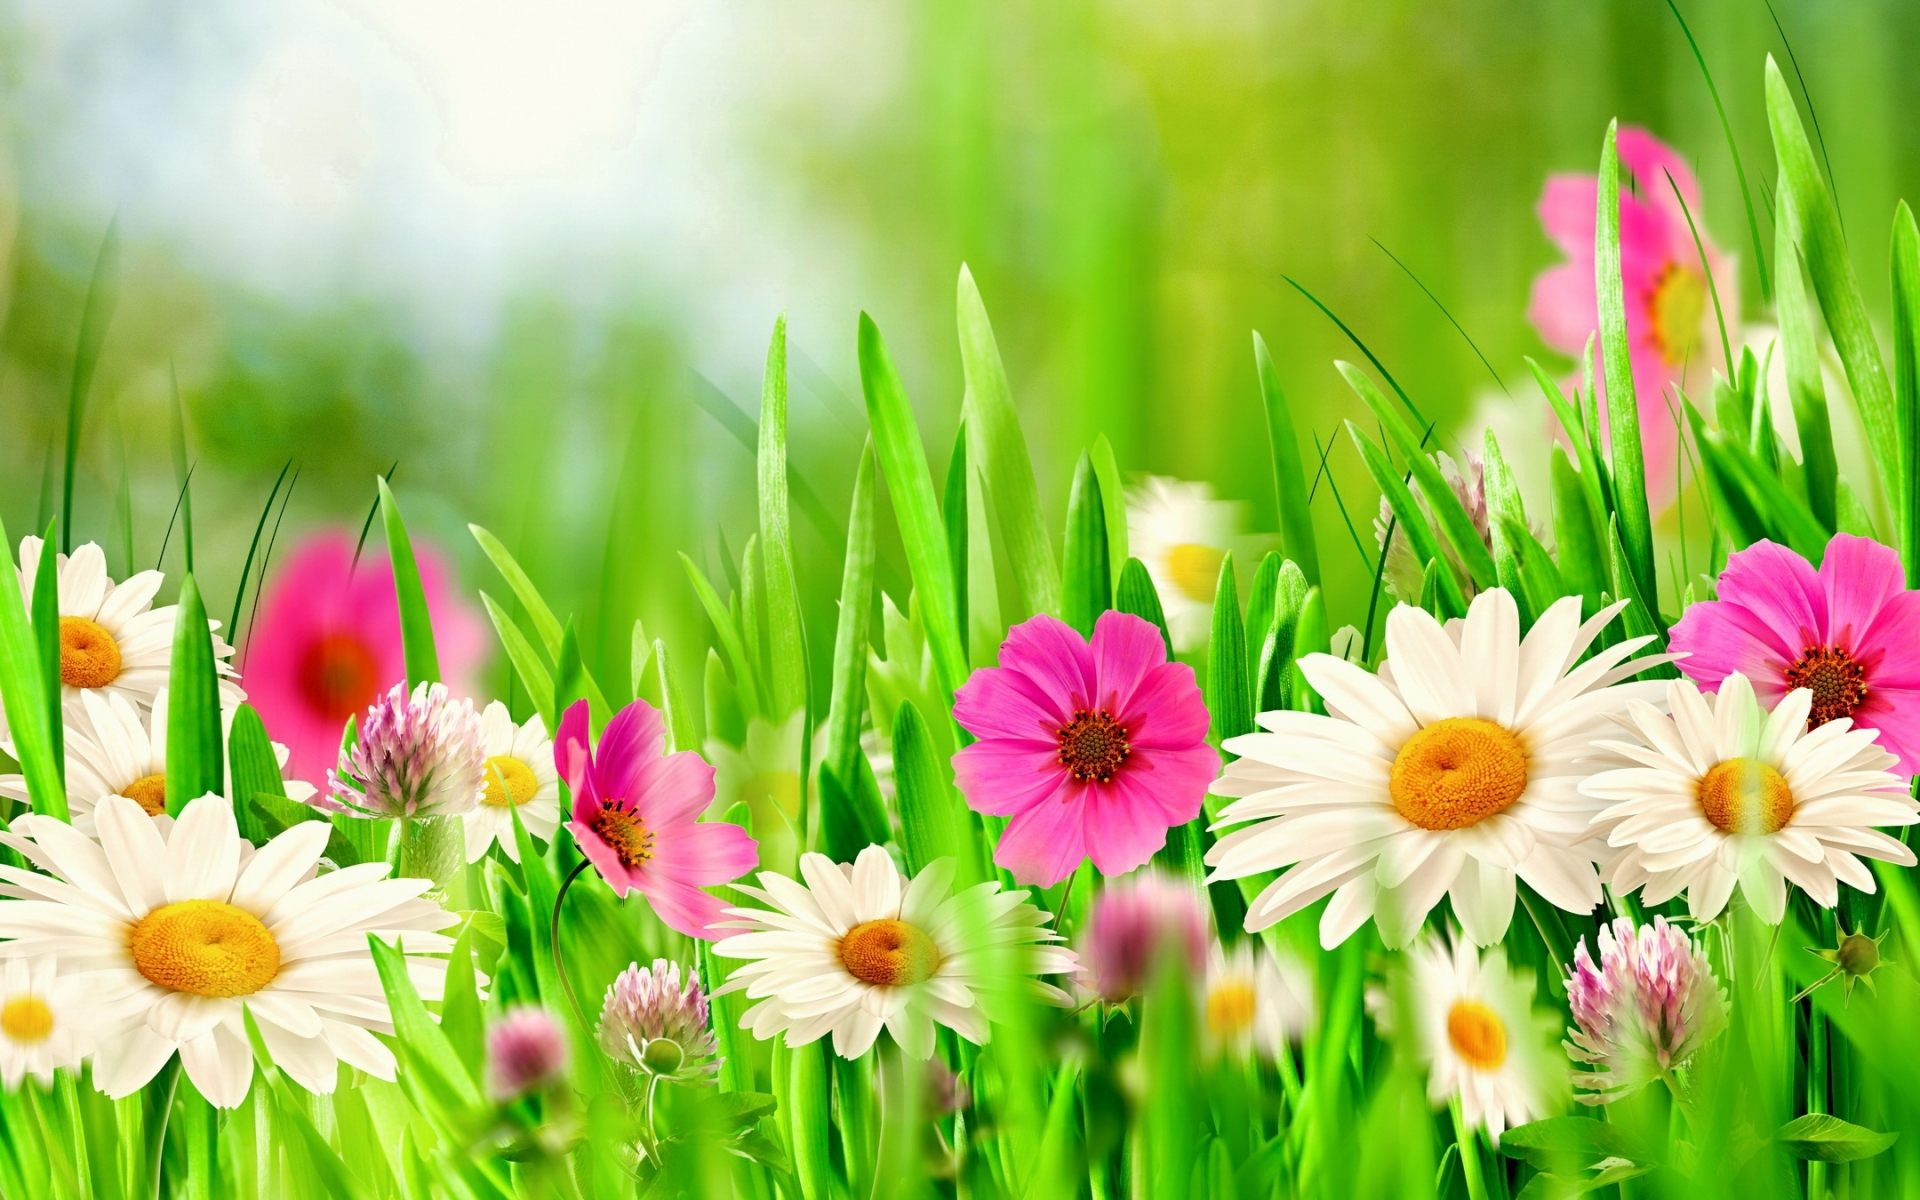 spring flowers backgrounds #3